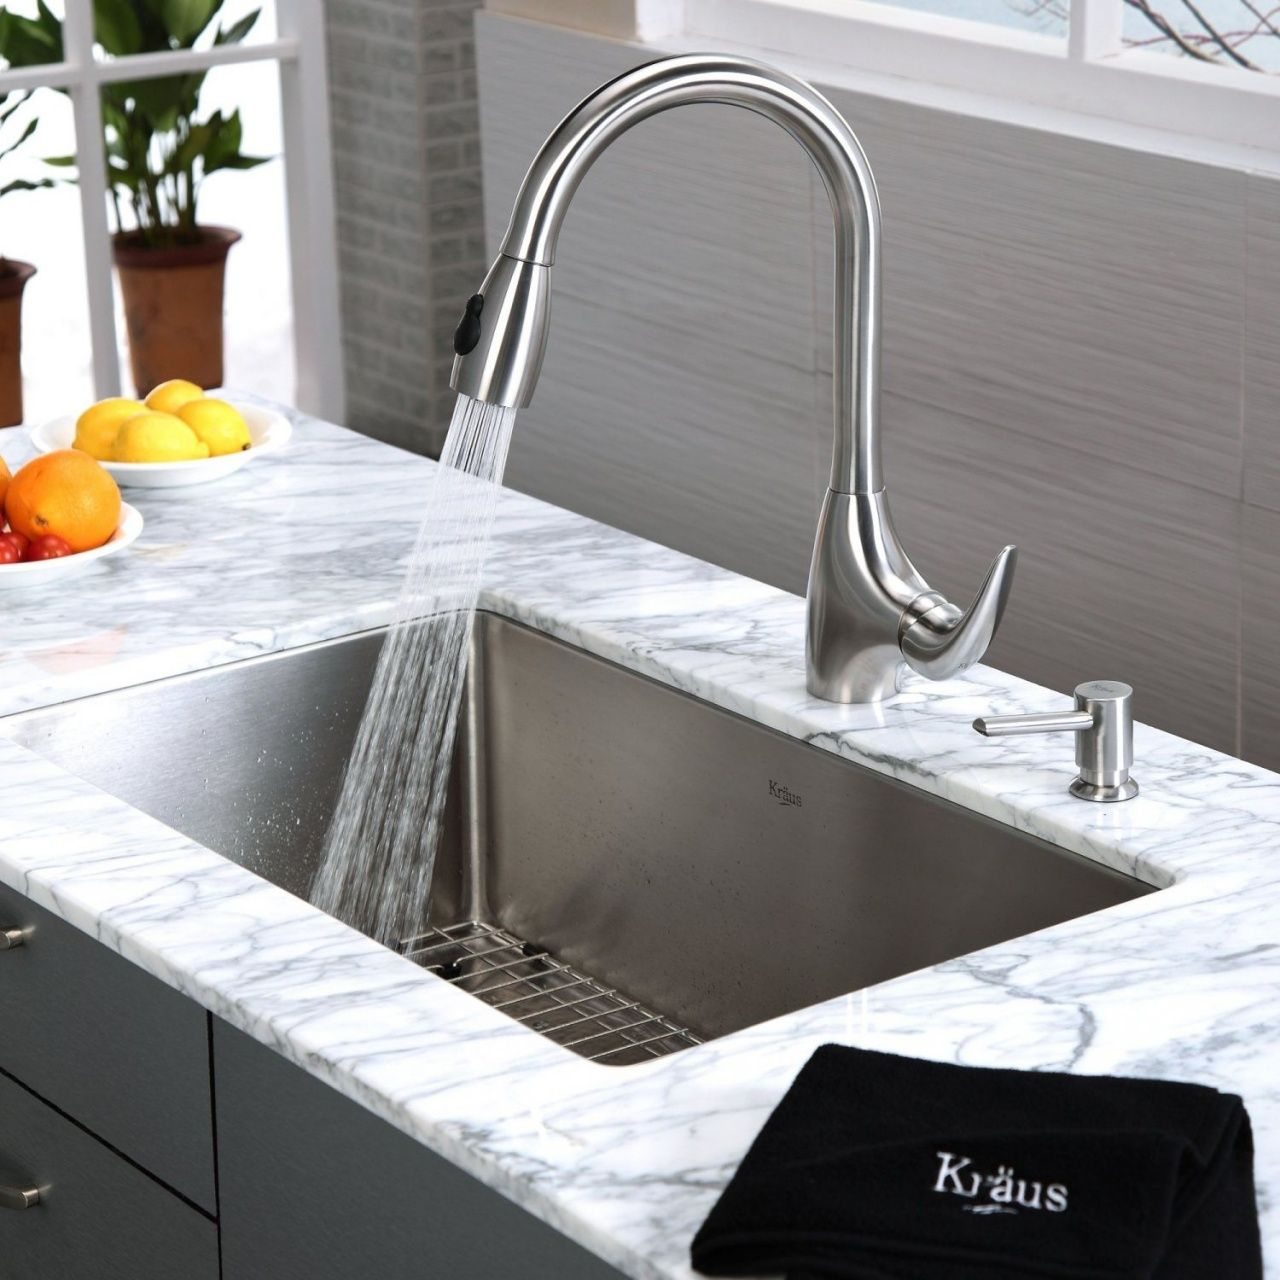 Kitchen Sink Size For 30 Inch Cabinet Stainless Steel Kitchen Sink Undermount 30 Inch Kitchen Sink Undermount Kitchen Sinks